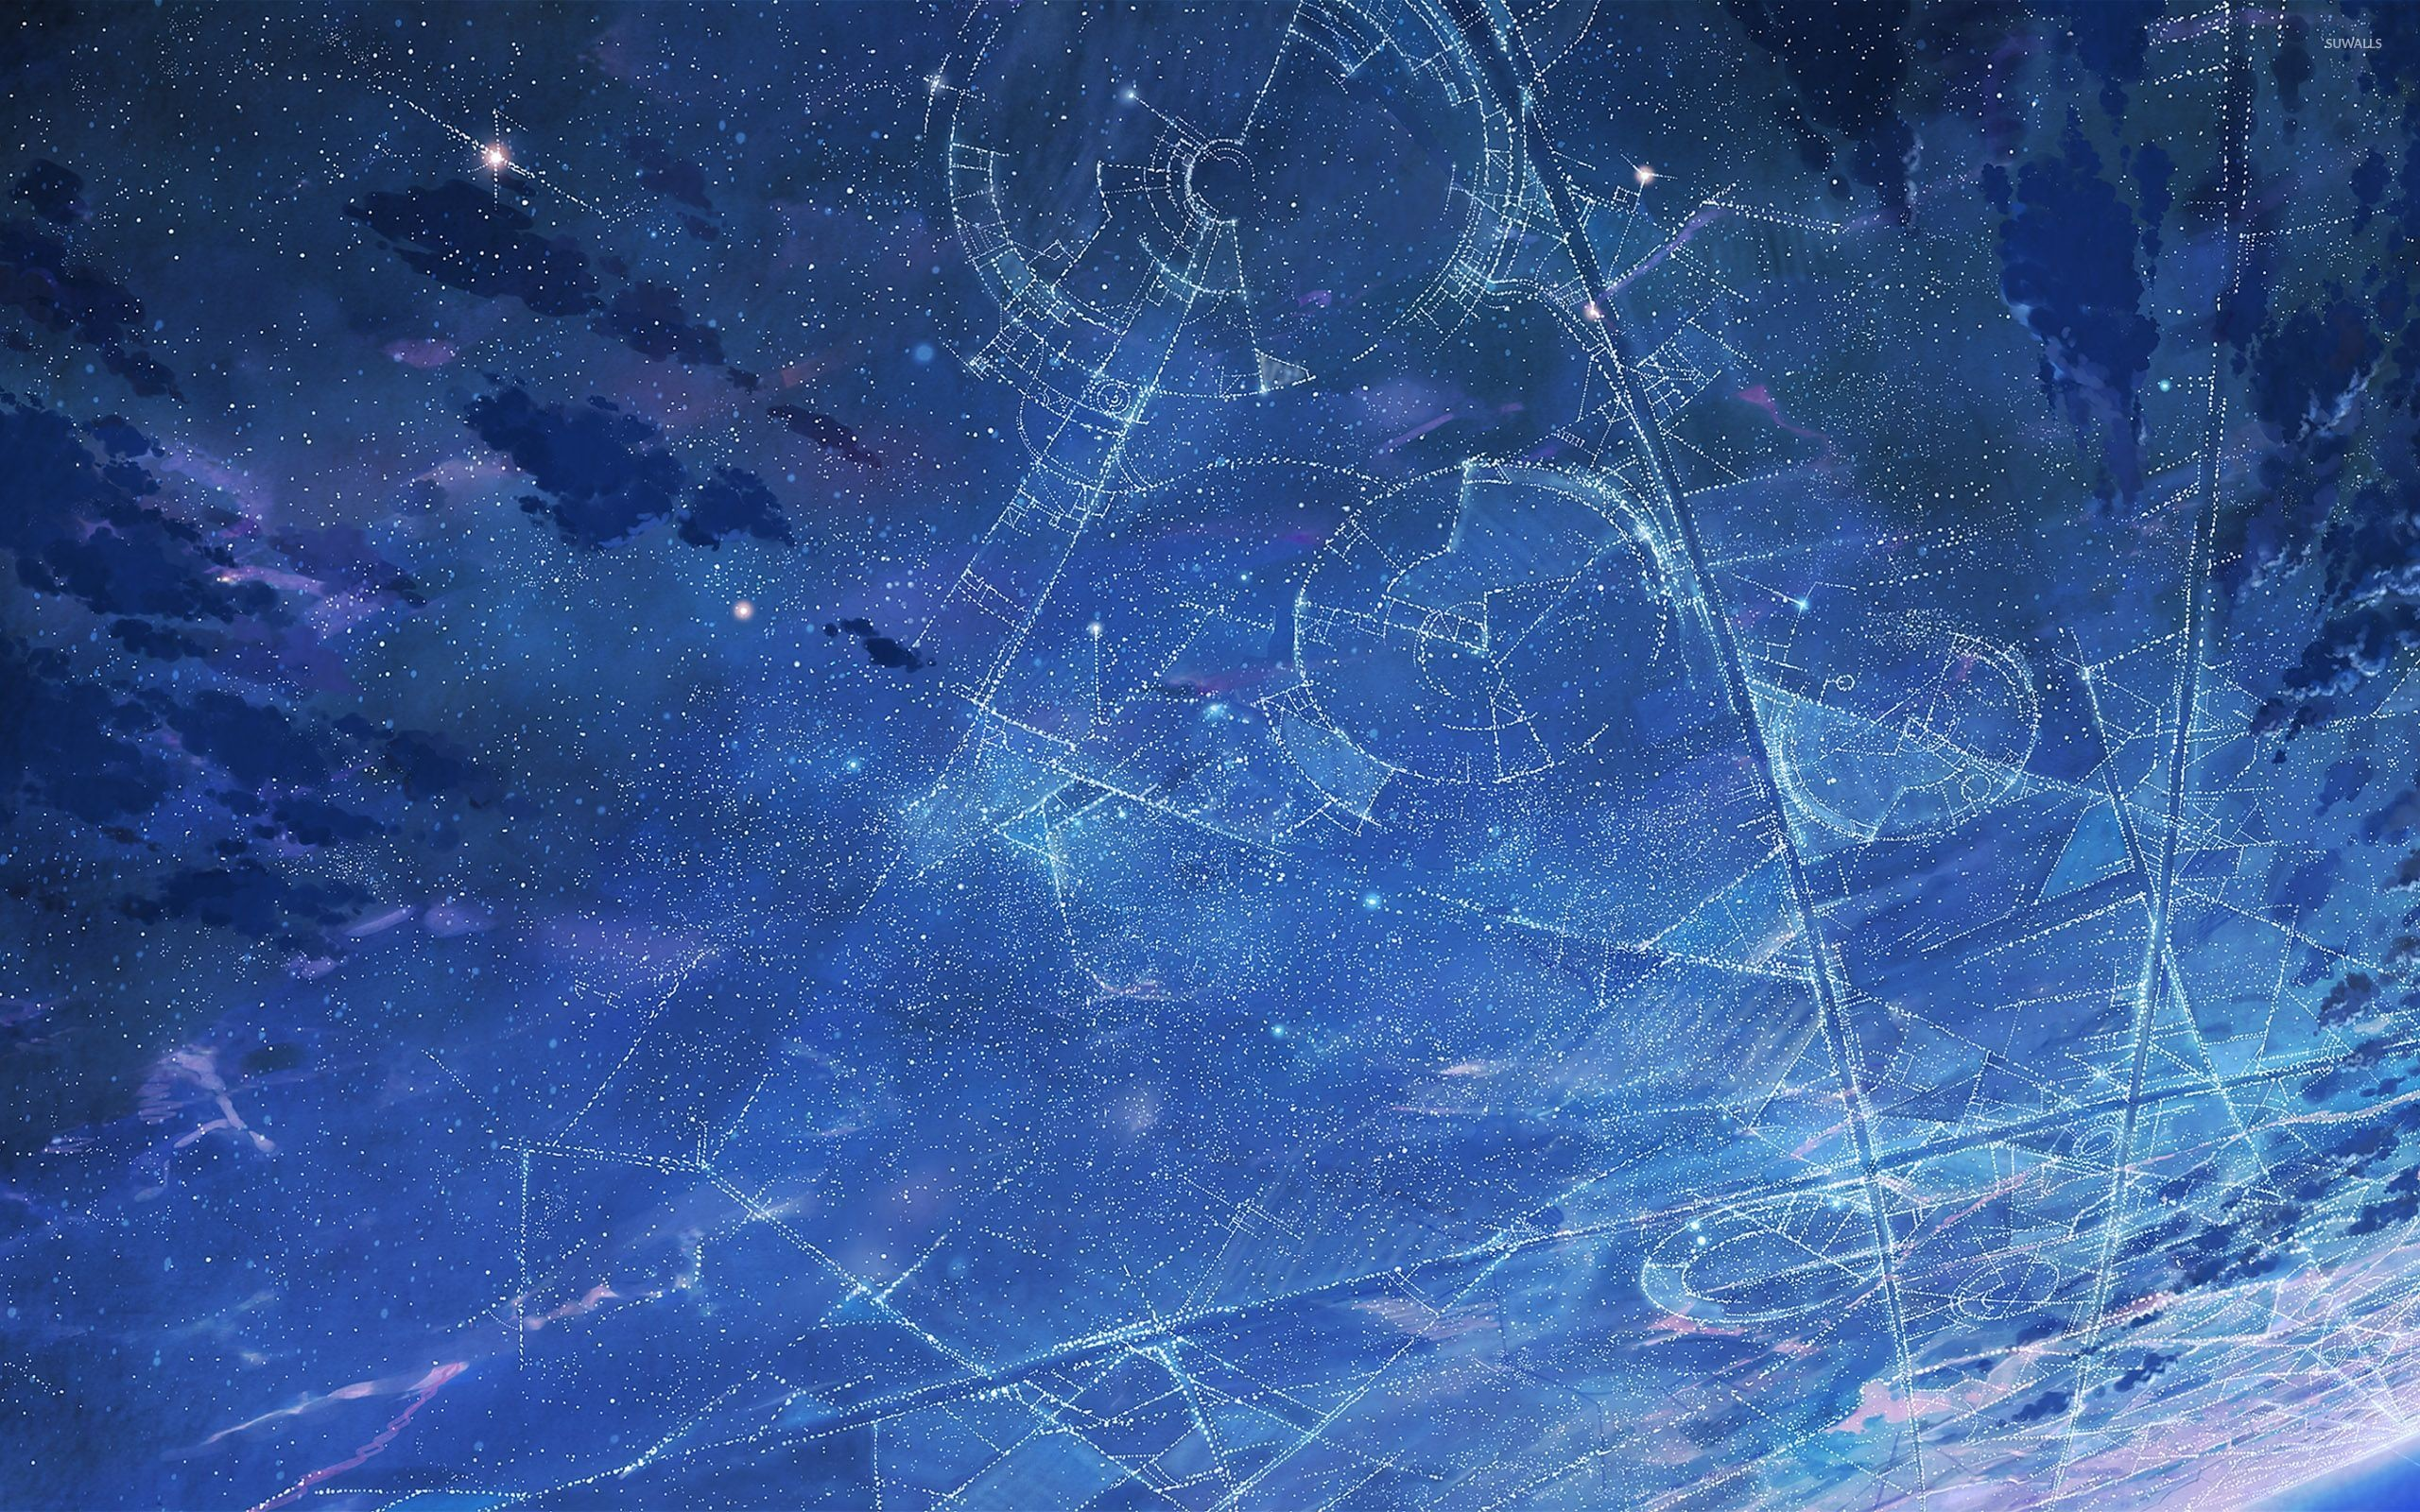 Res: 2560x1600, Constellations wallpaper